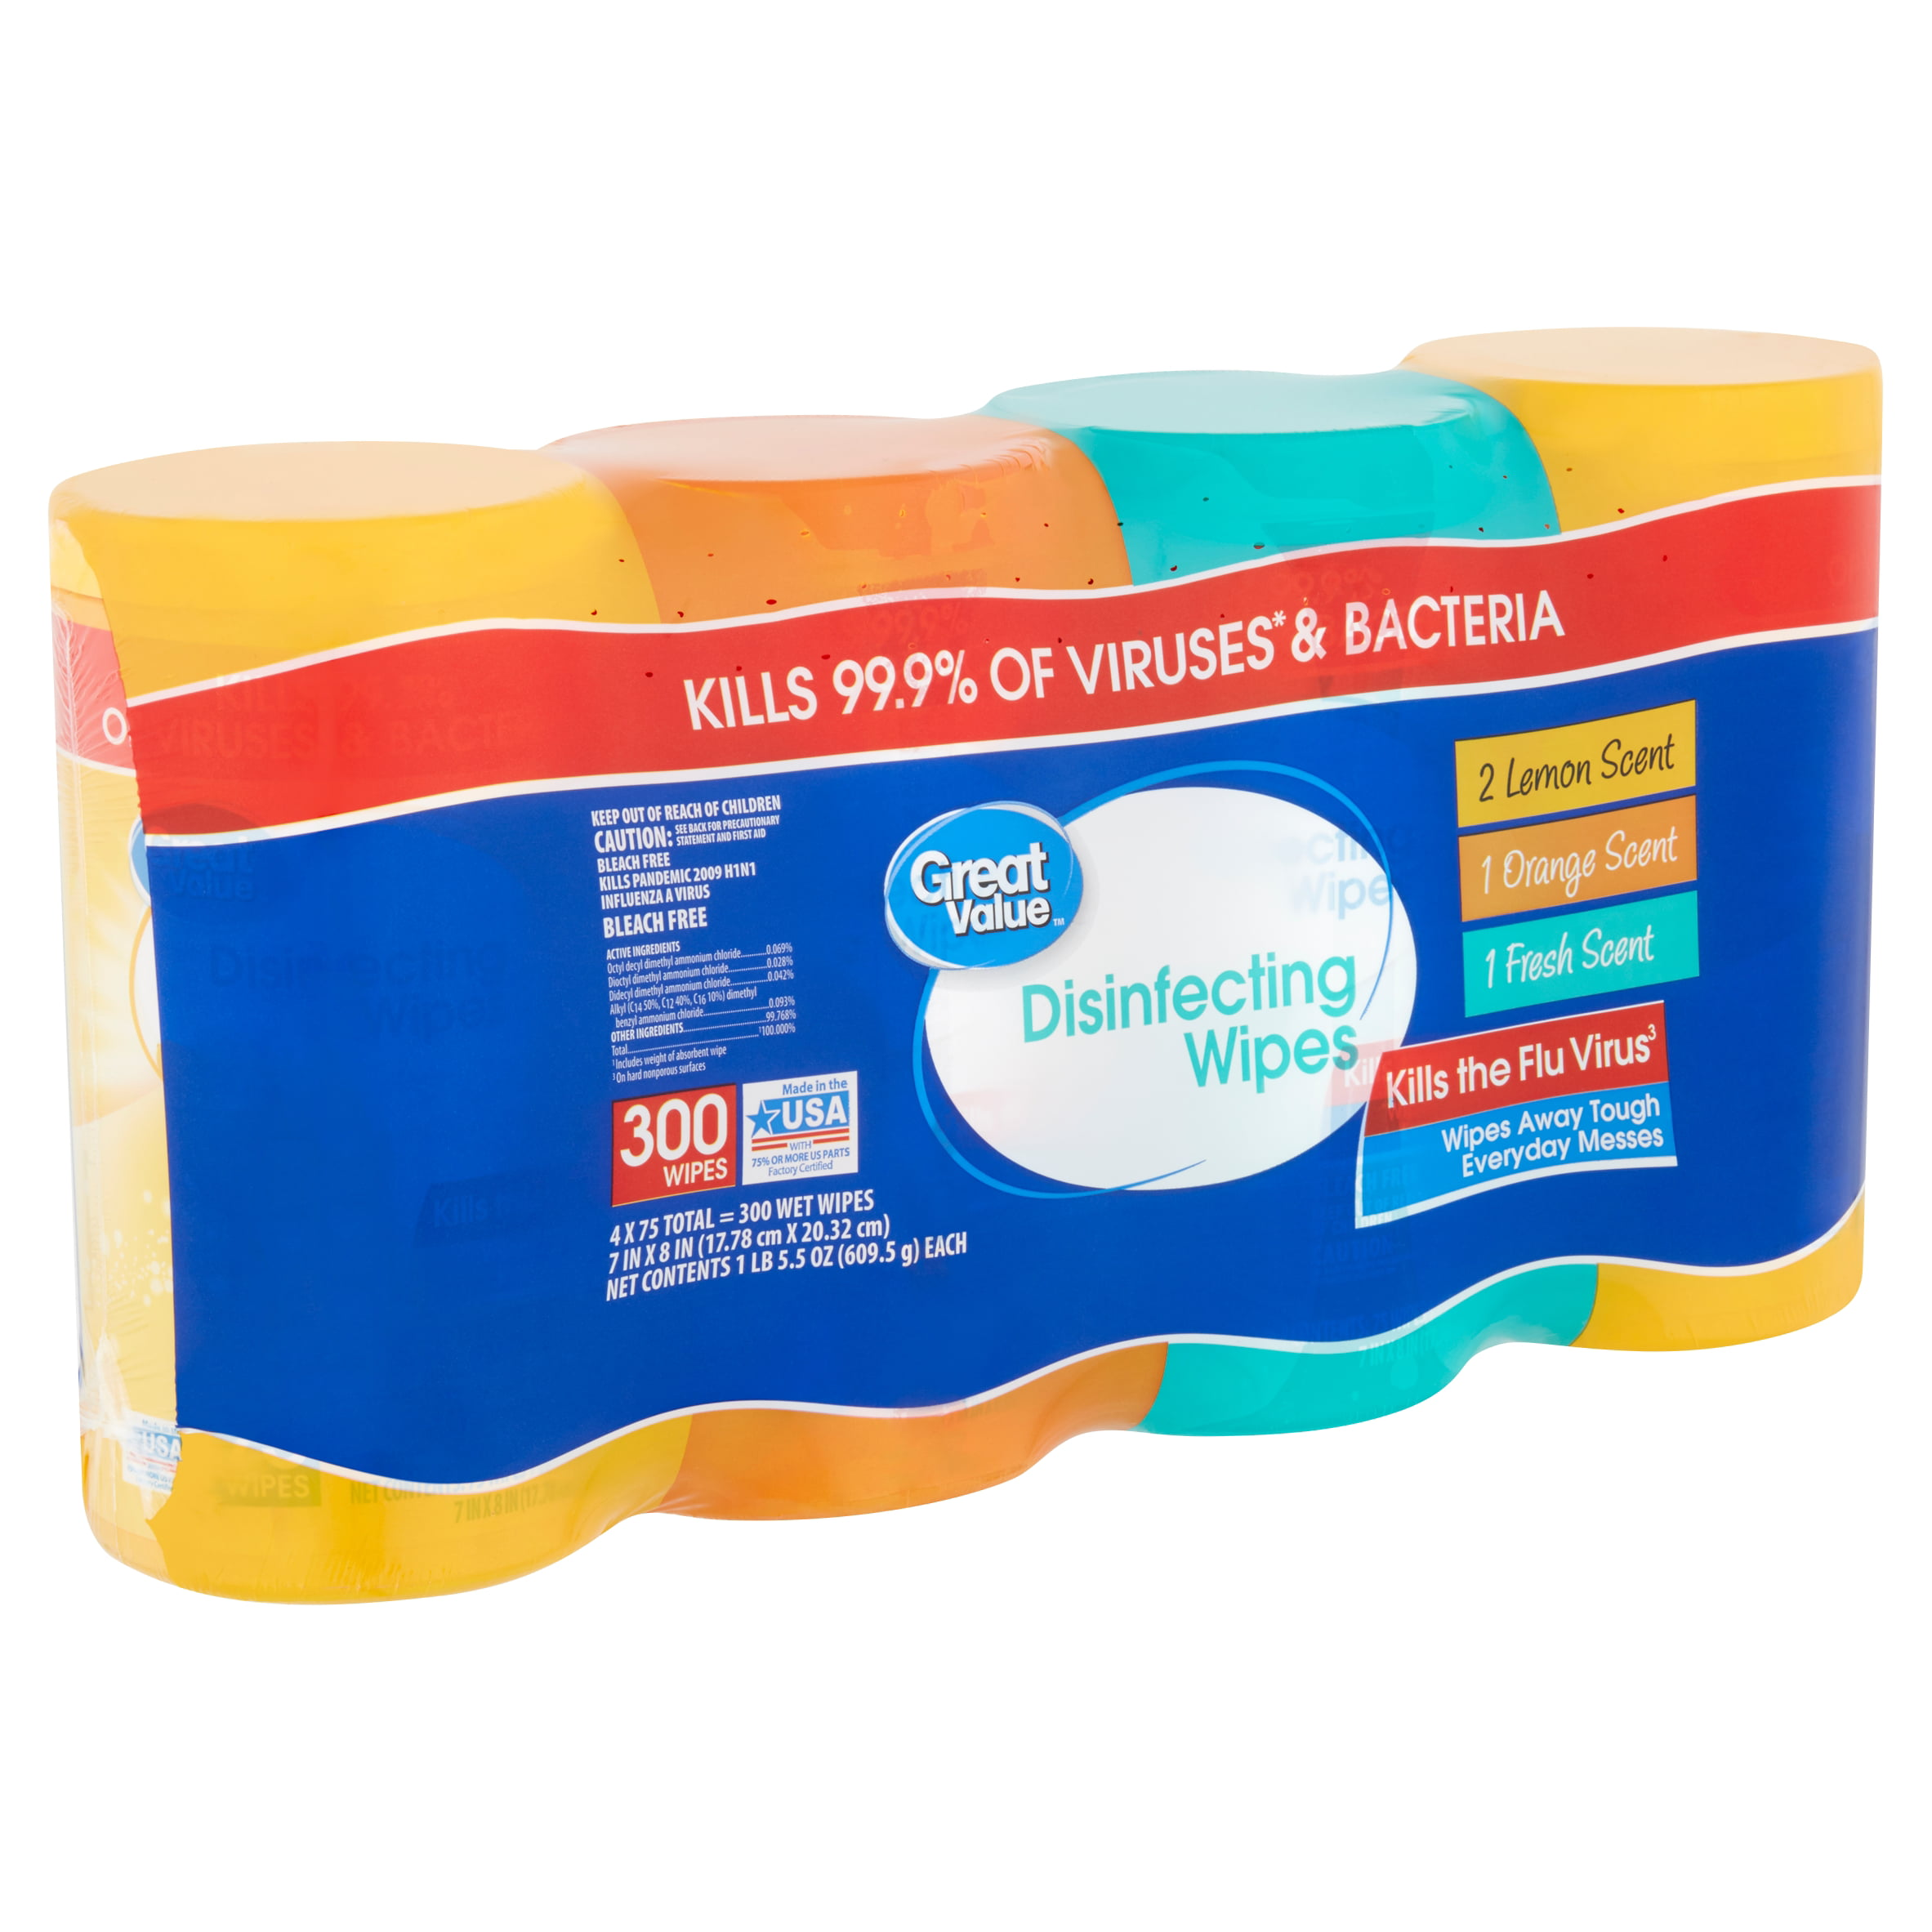 923ee2ce179 Great Value Disinfecting Wipes, 1 lb 5.5 oz, 75 count, 4 pack - Walmart.com